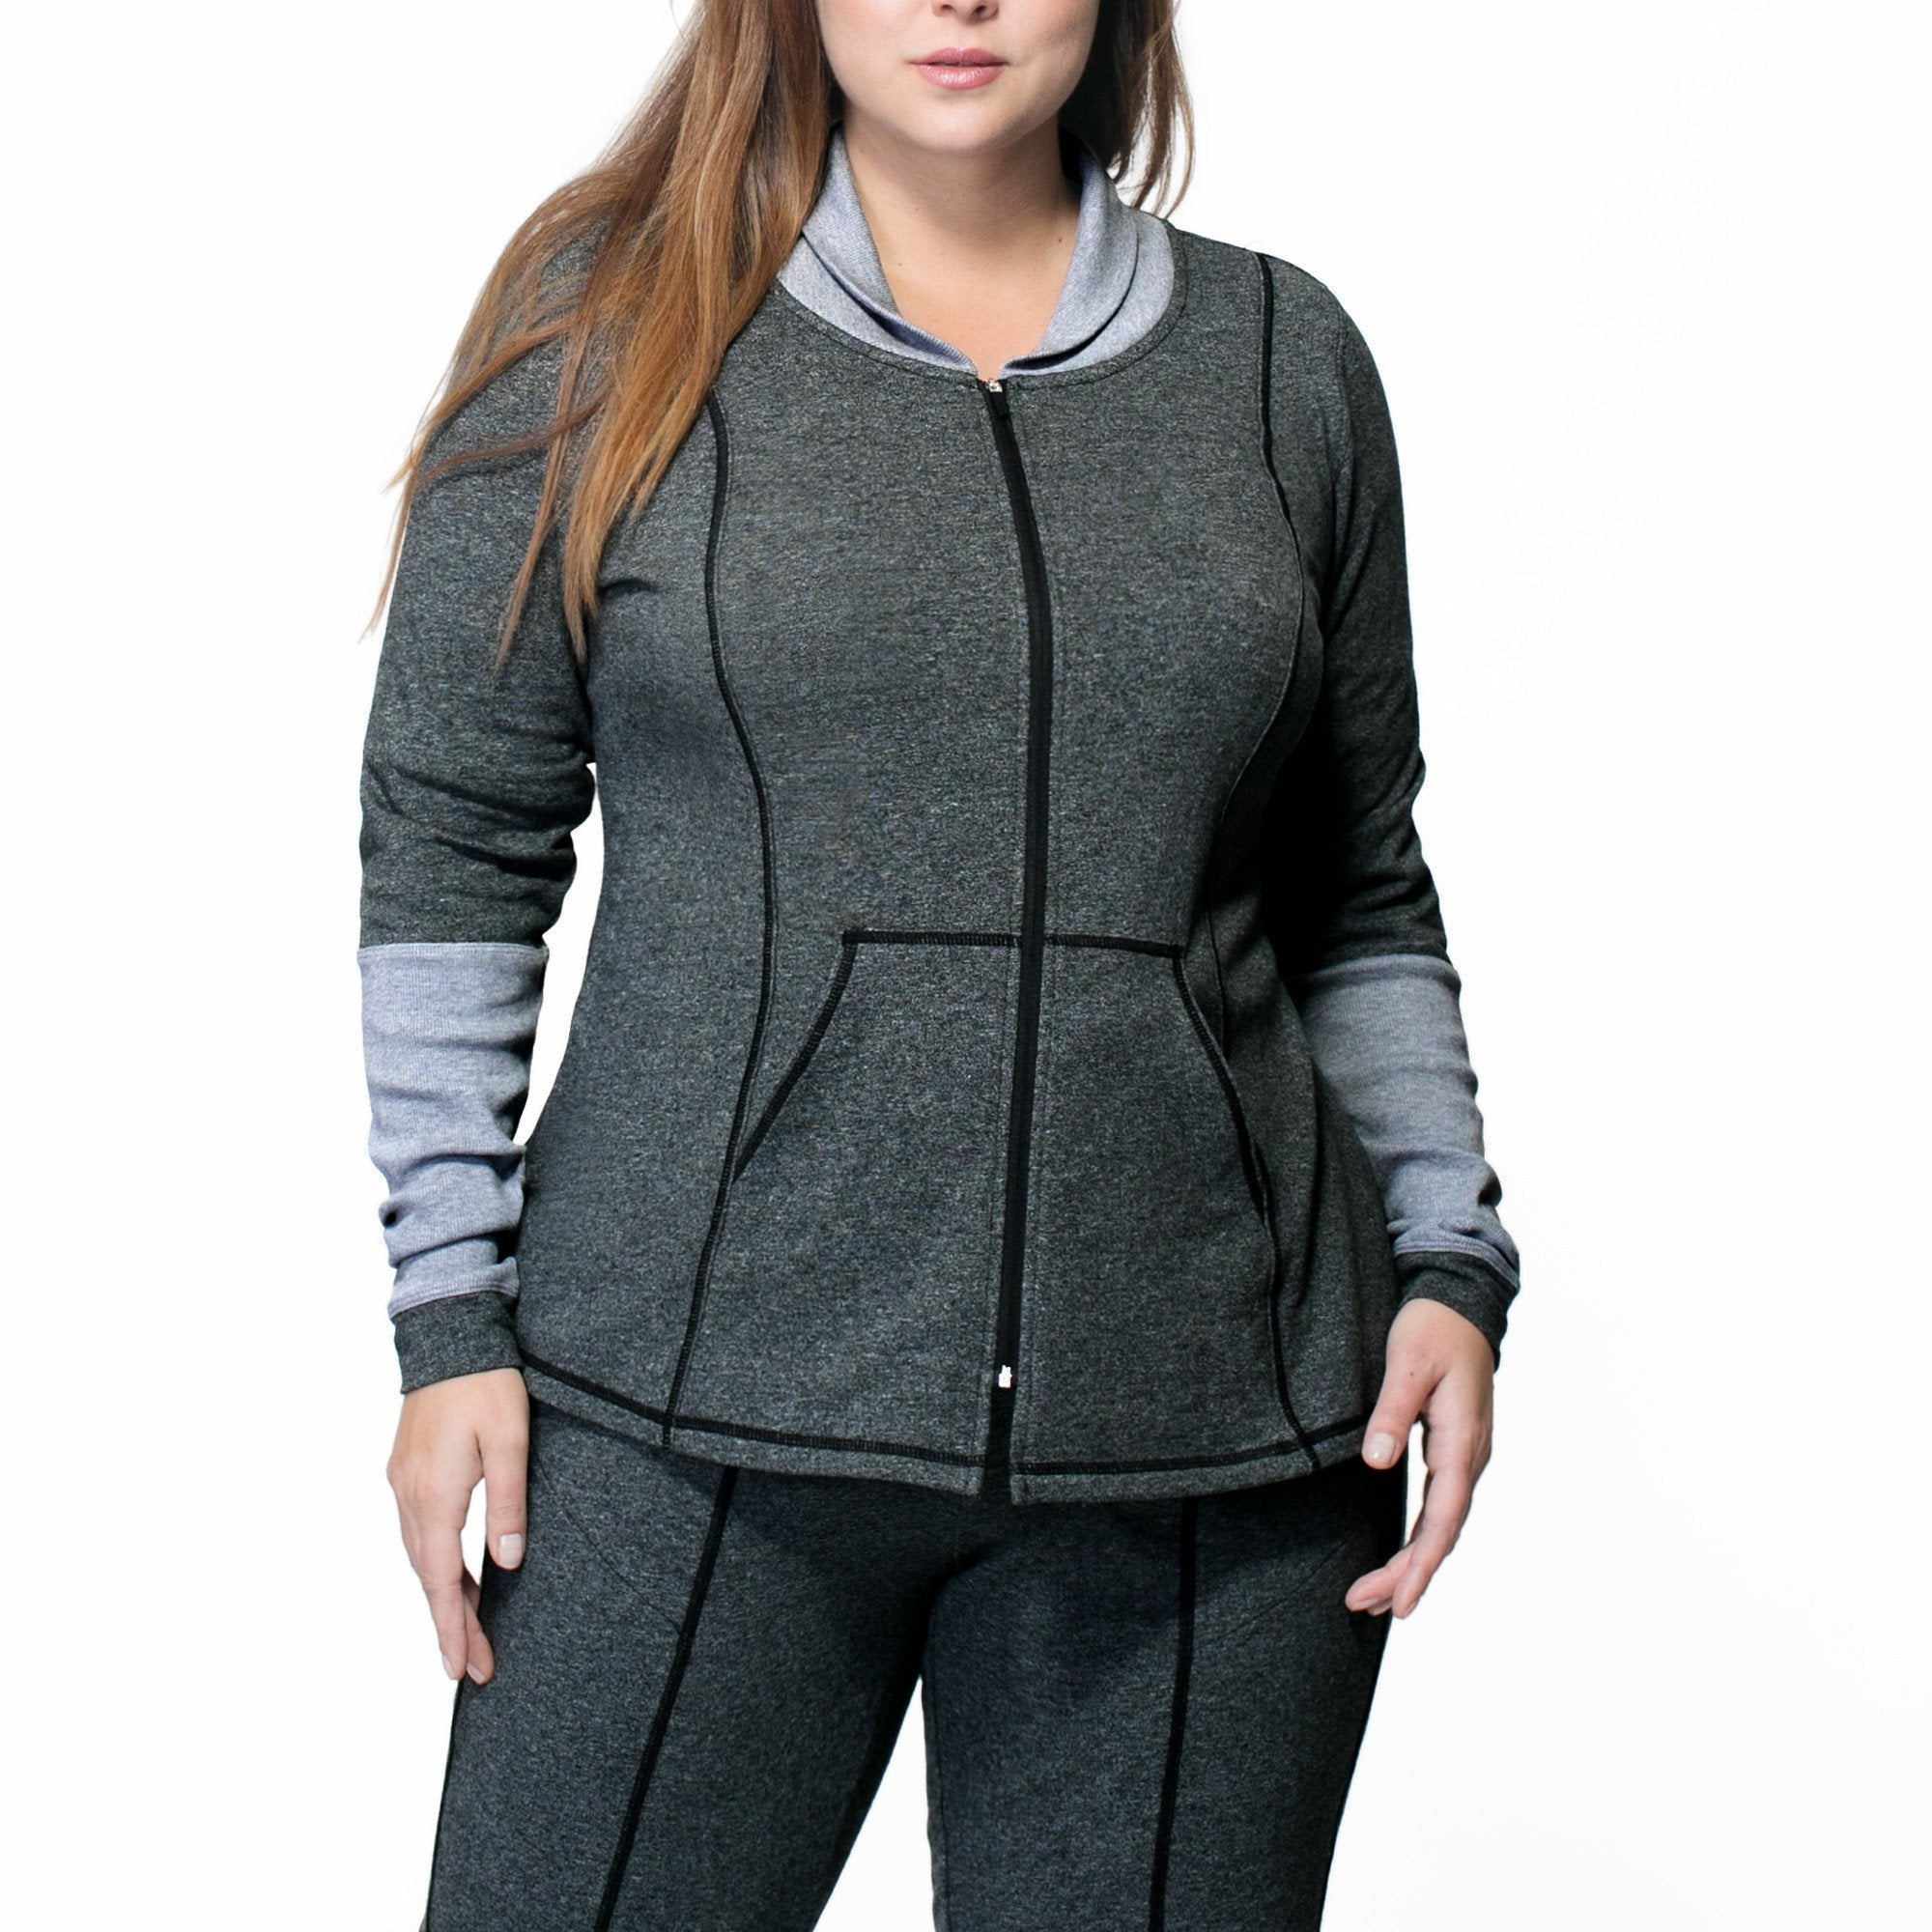 Ella Zip-Up - Rainbeau Curves, 14/16 / Charcoal Heather, activewear, athleisure, fitness, workout, gym, performance, womens, ladies, plus size, curvy, full figured, spandex, cotton, polyester - 1